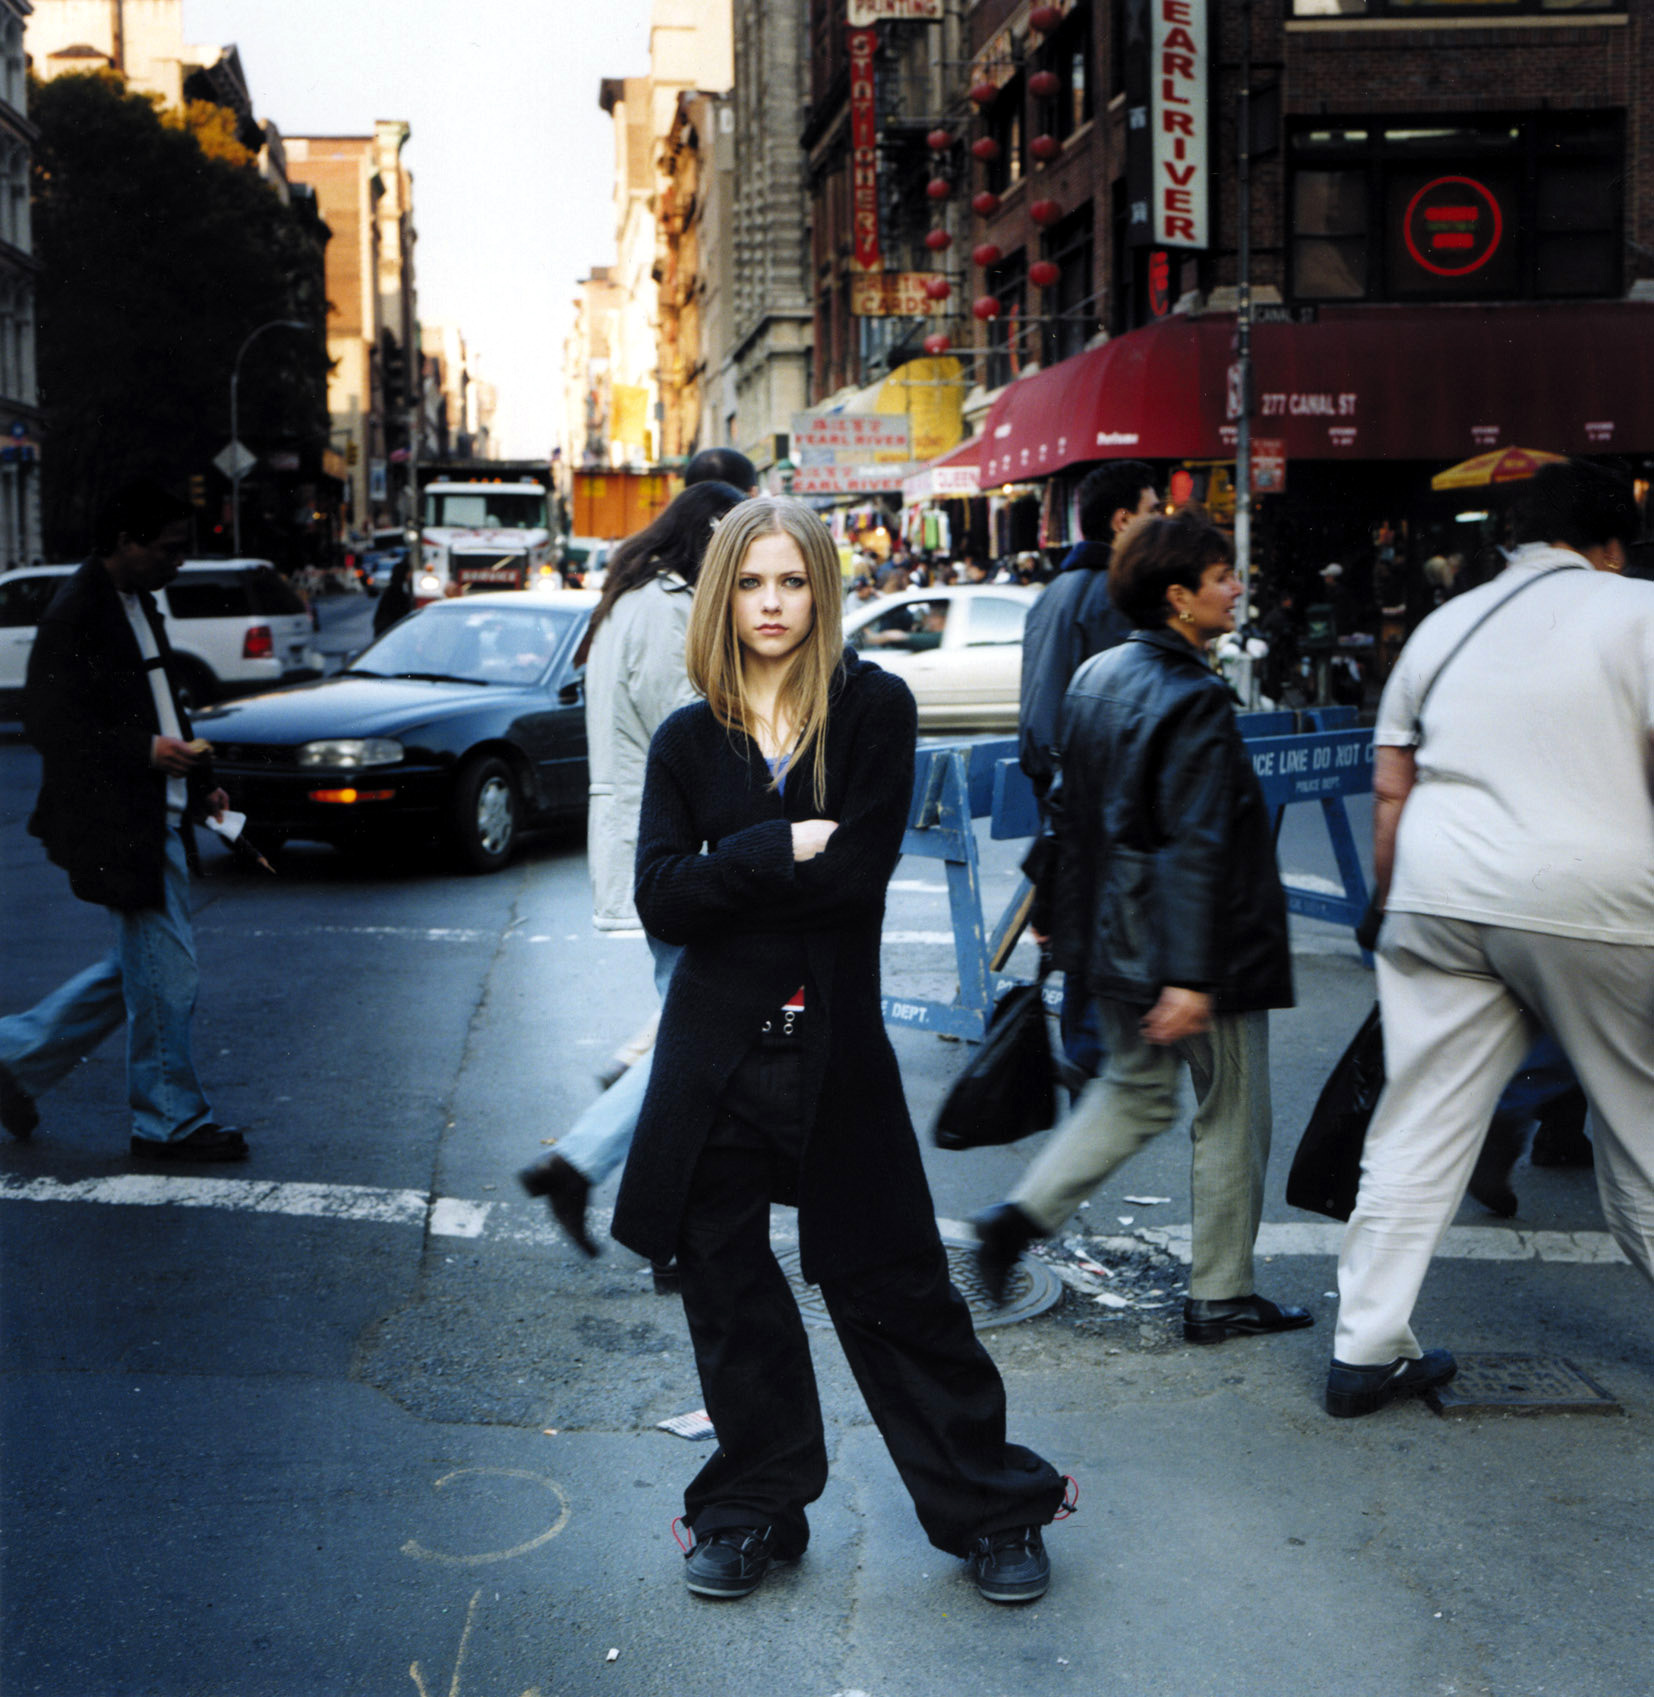 Anichu90 Avril Lavigne - Photoshoot #001: Let Go album (2002)